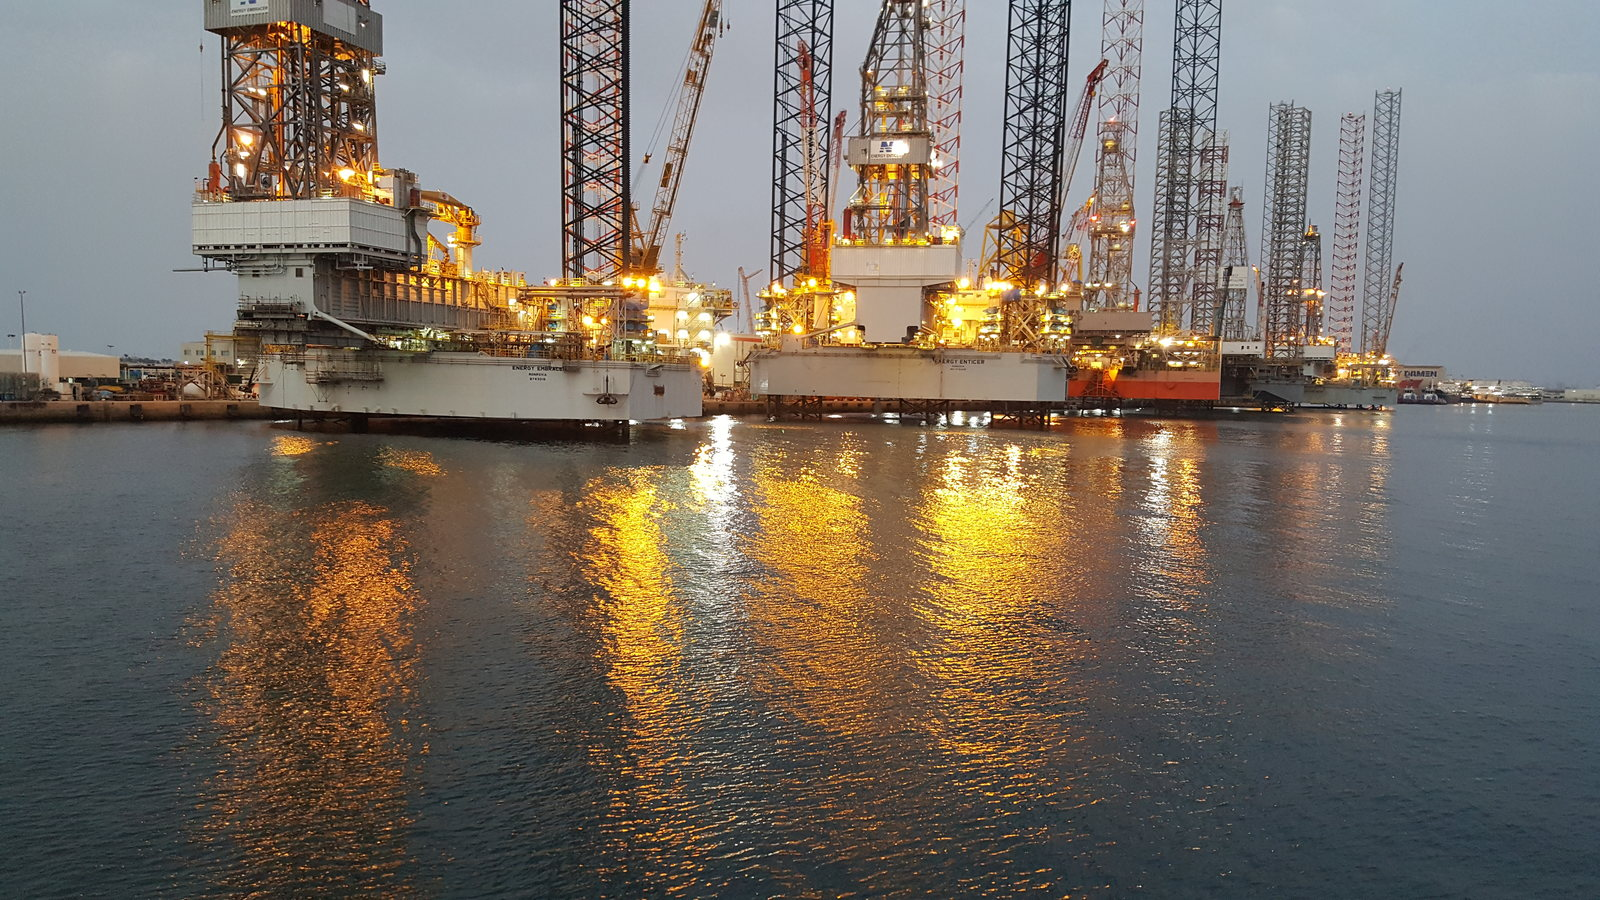 Oil rigs at Hamriyah with their lights reflecting in the water